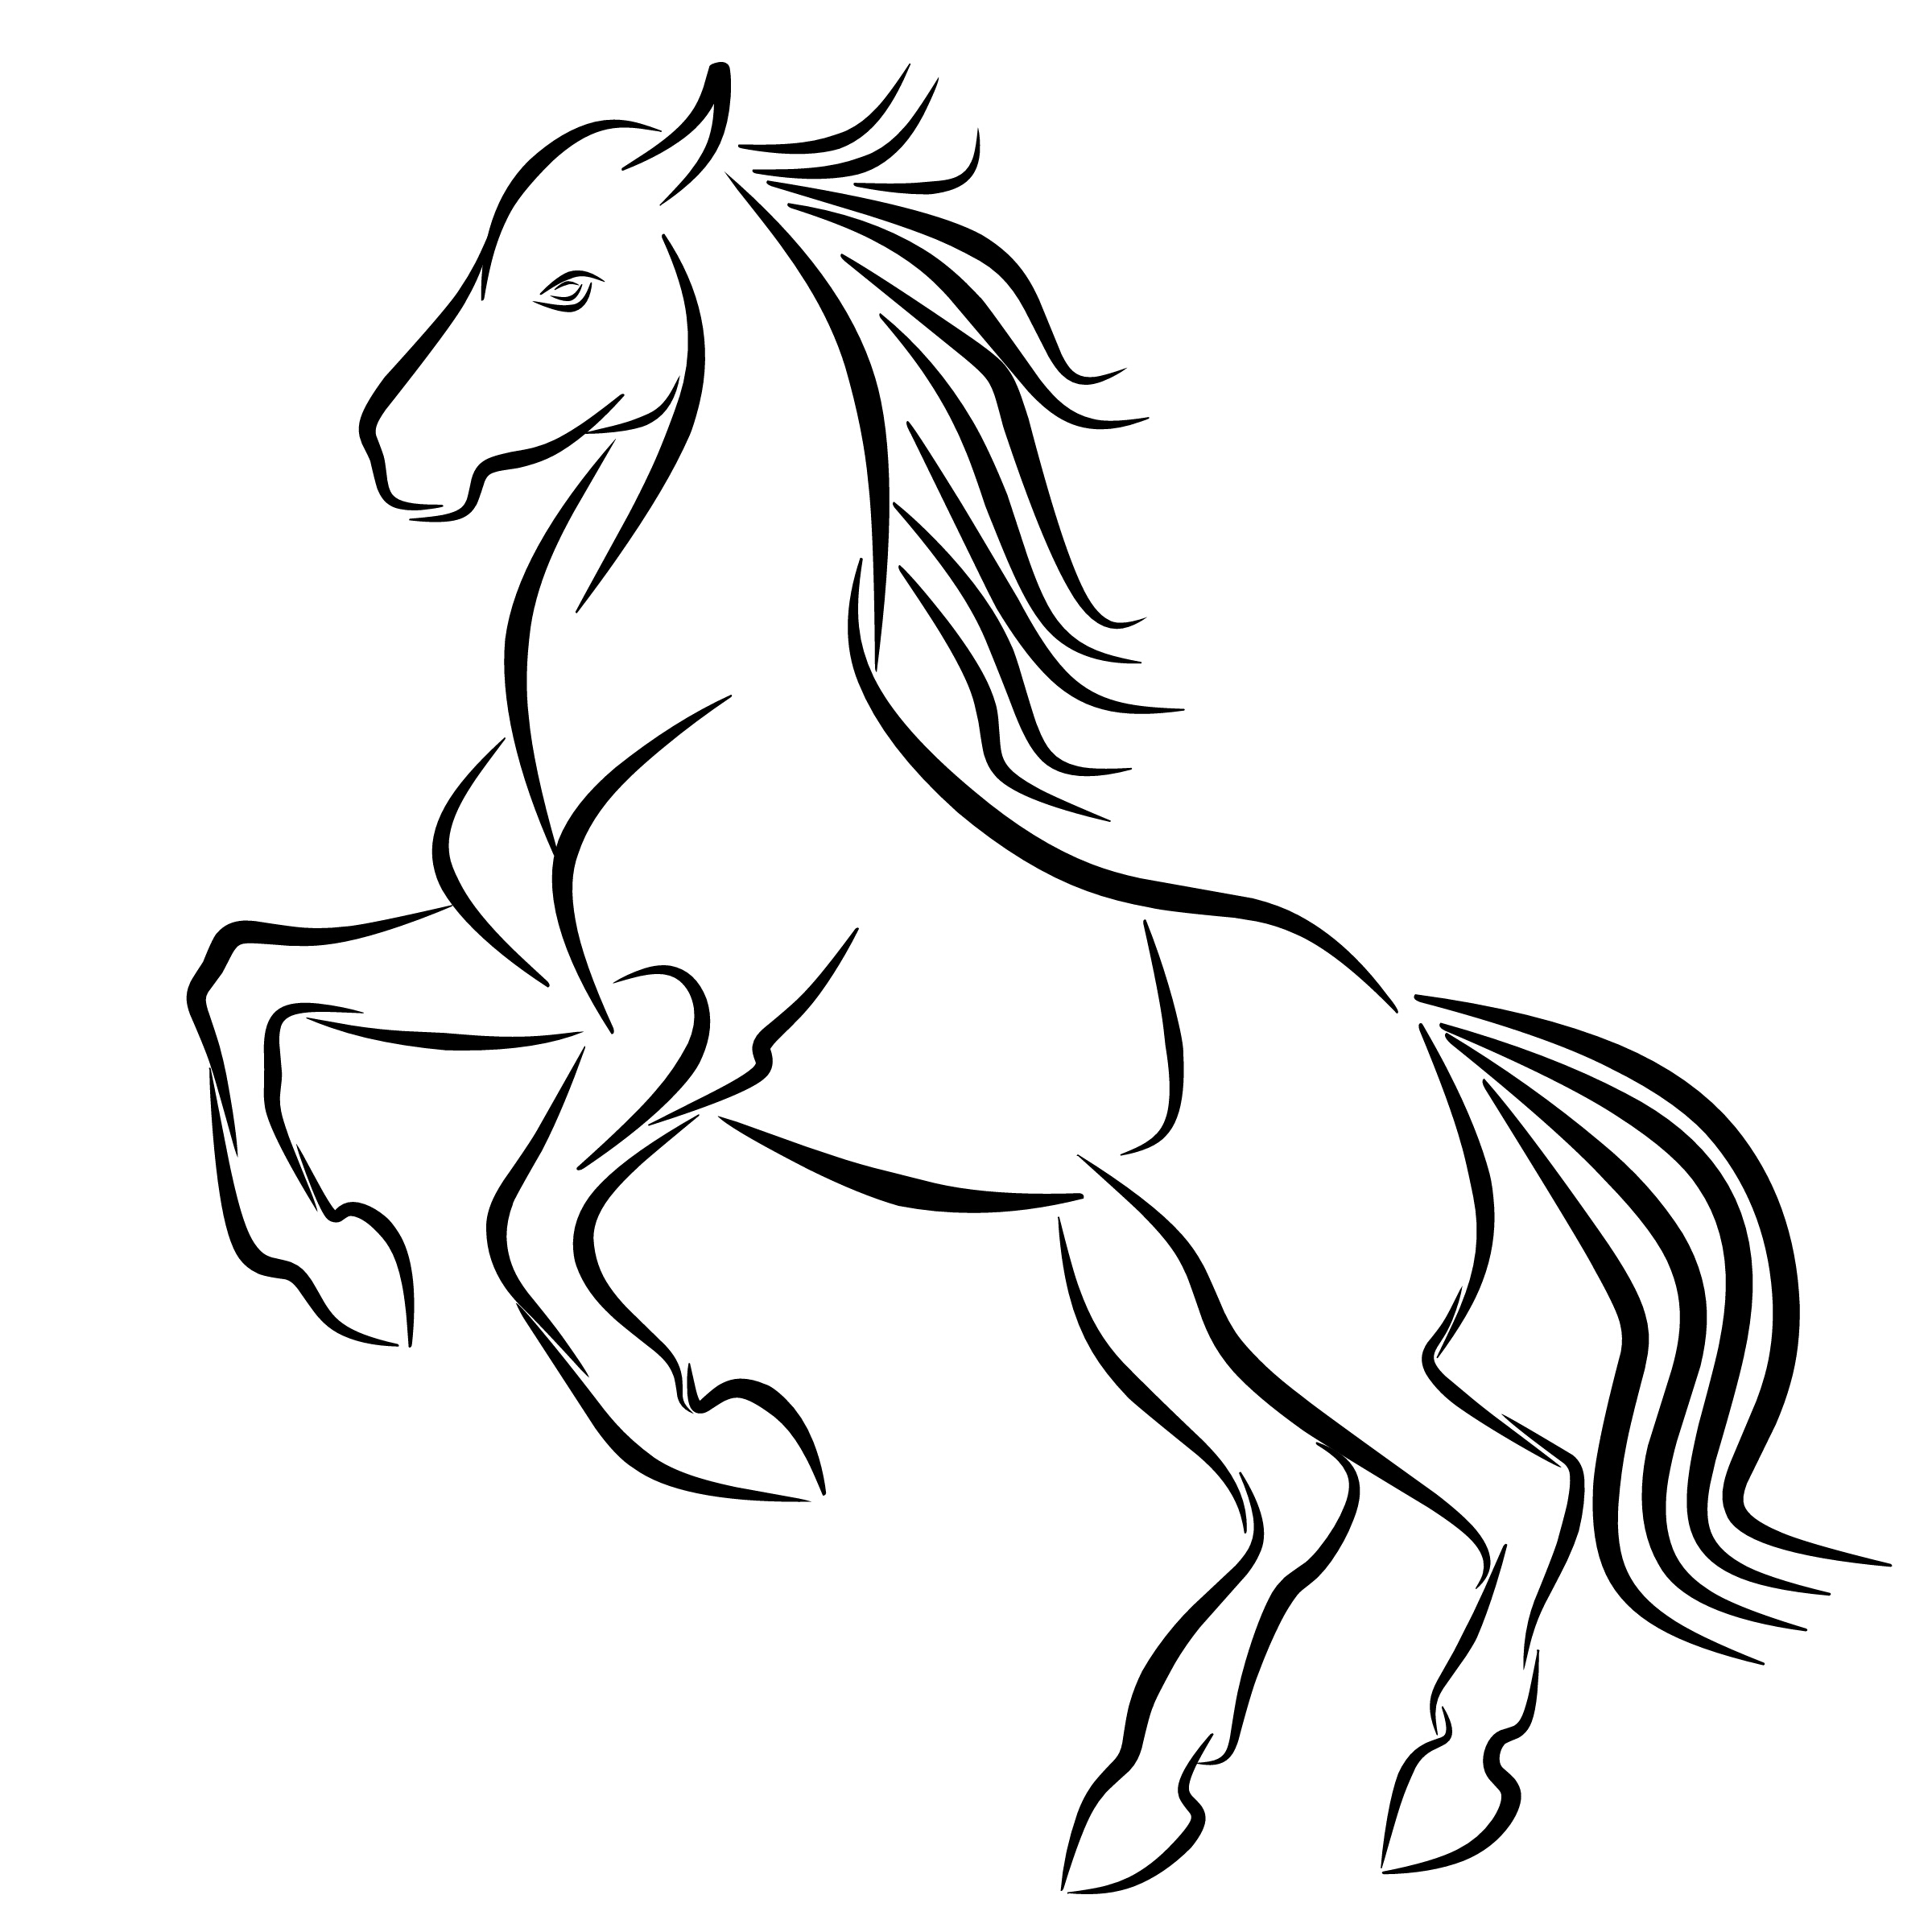 Mustang Horse Drawing Free Download Best Mustang Horse Drawing On